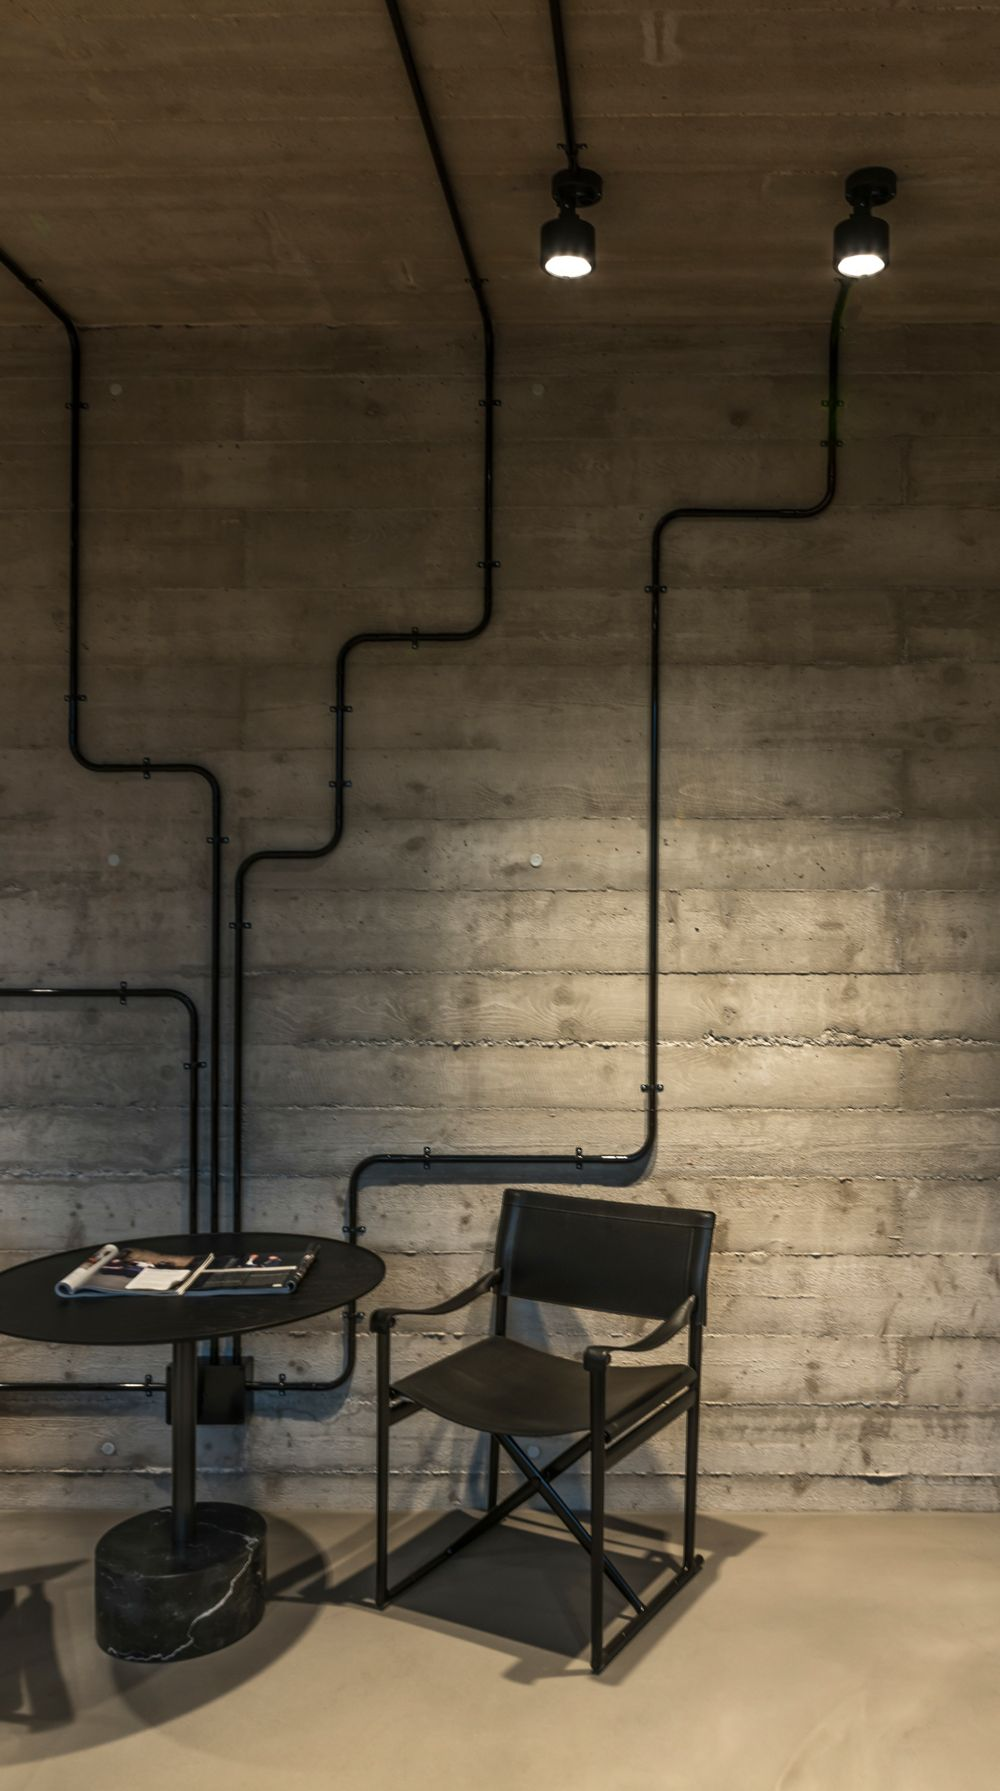 hight resolution of accent erco lighting and surface mounted wiring as a graphic element interior wall surface wiring